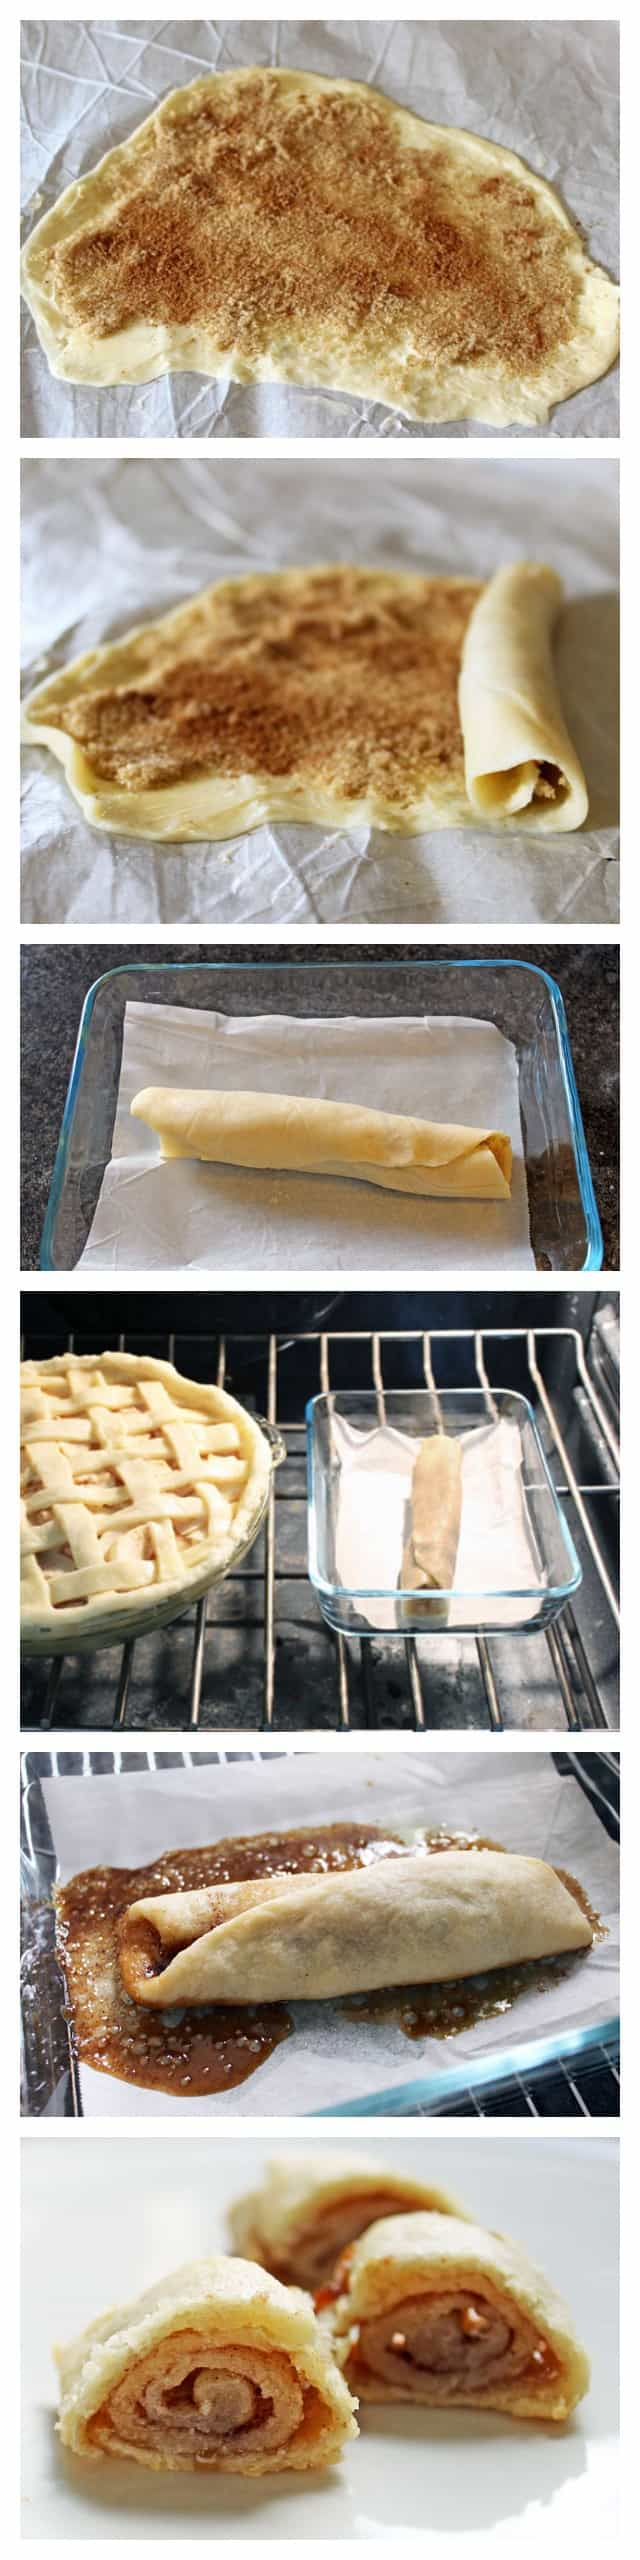 How to use up leftover pastry scraps. The most delicious morsel of pastry ever!